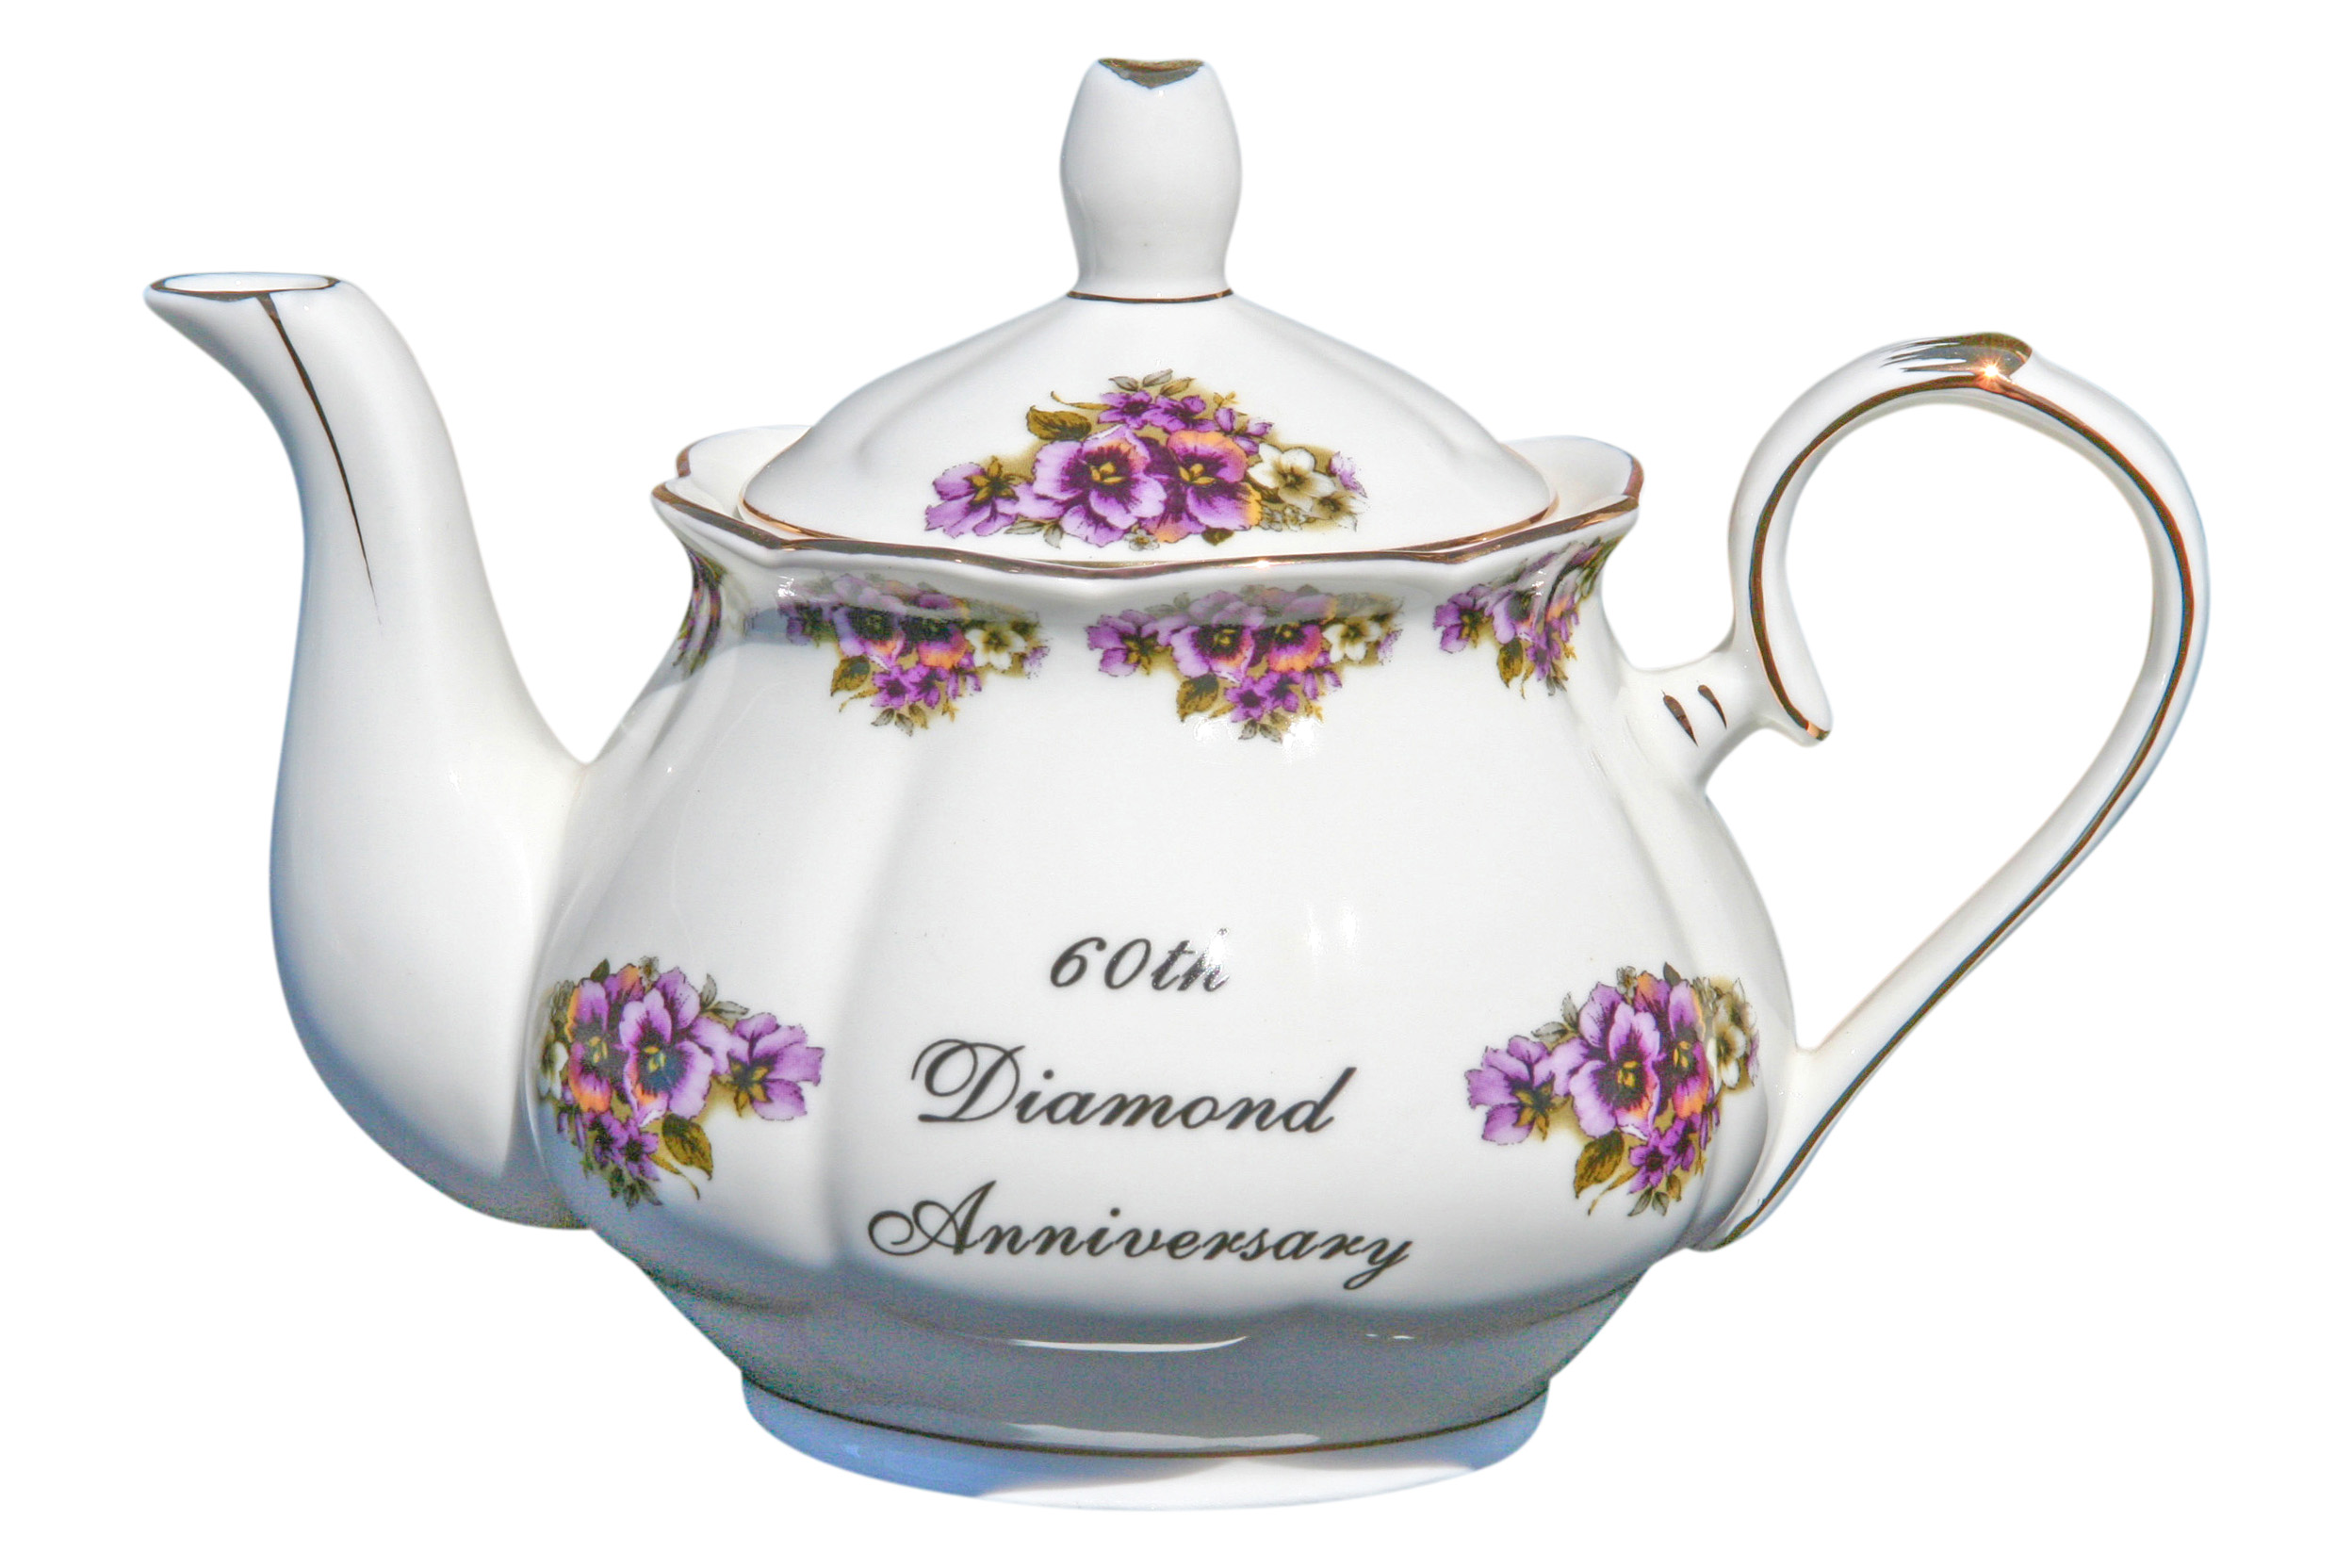 60th Anniversary 2 cup Teapot